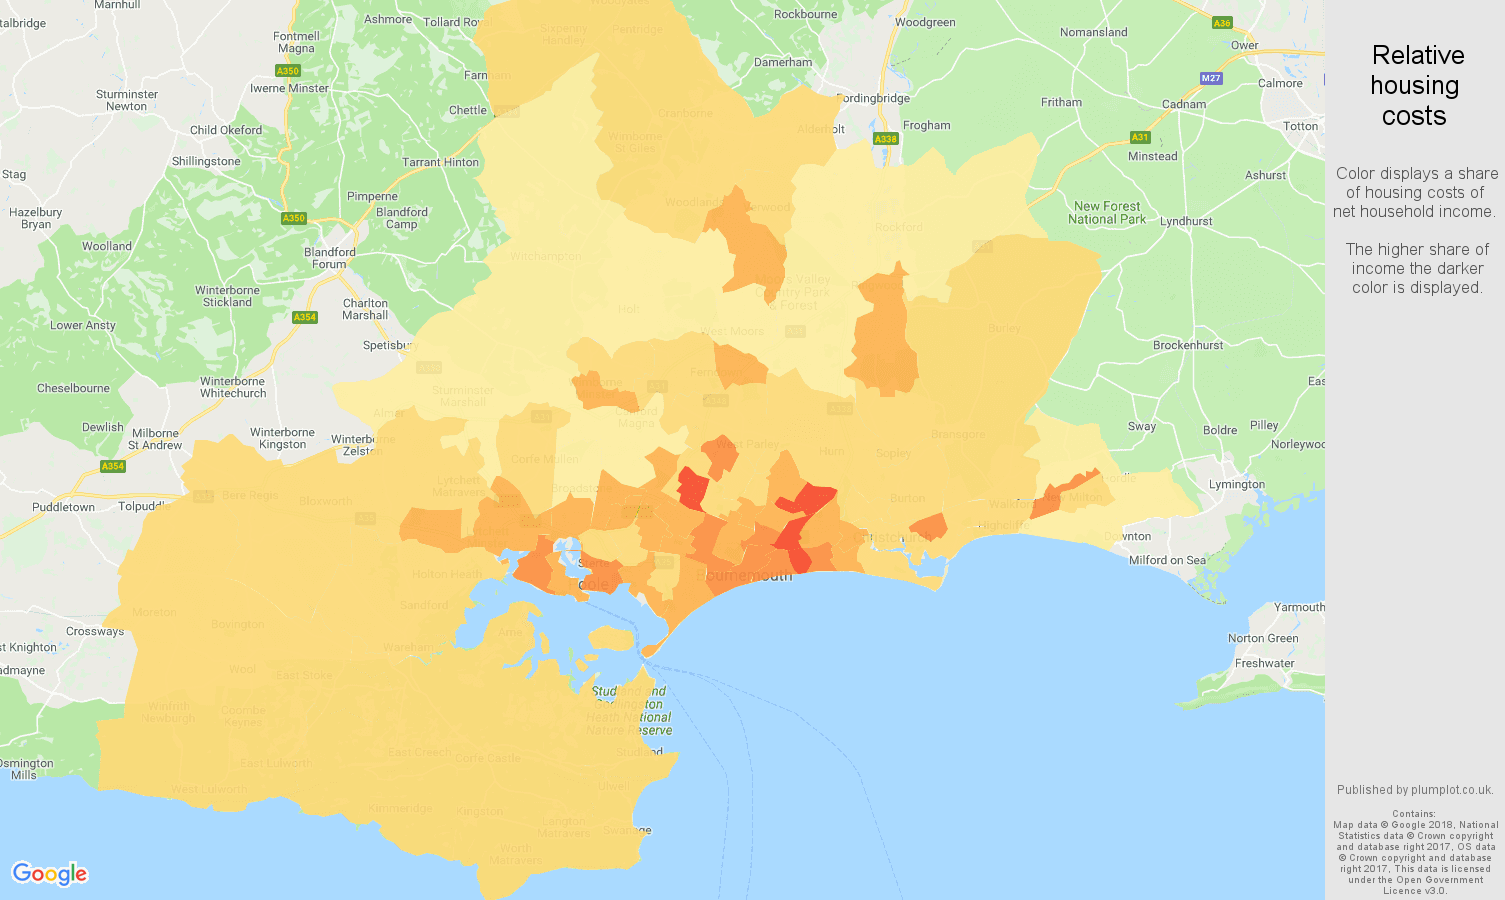 Bournemouth relative housing costs map